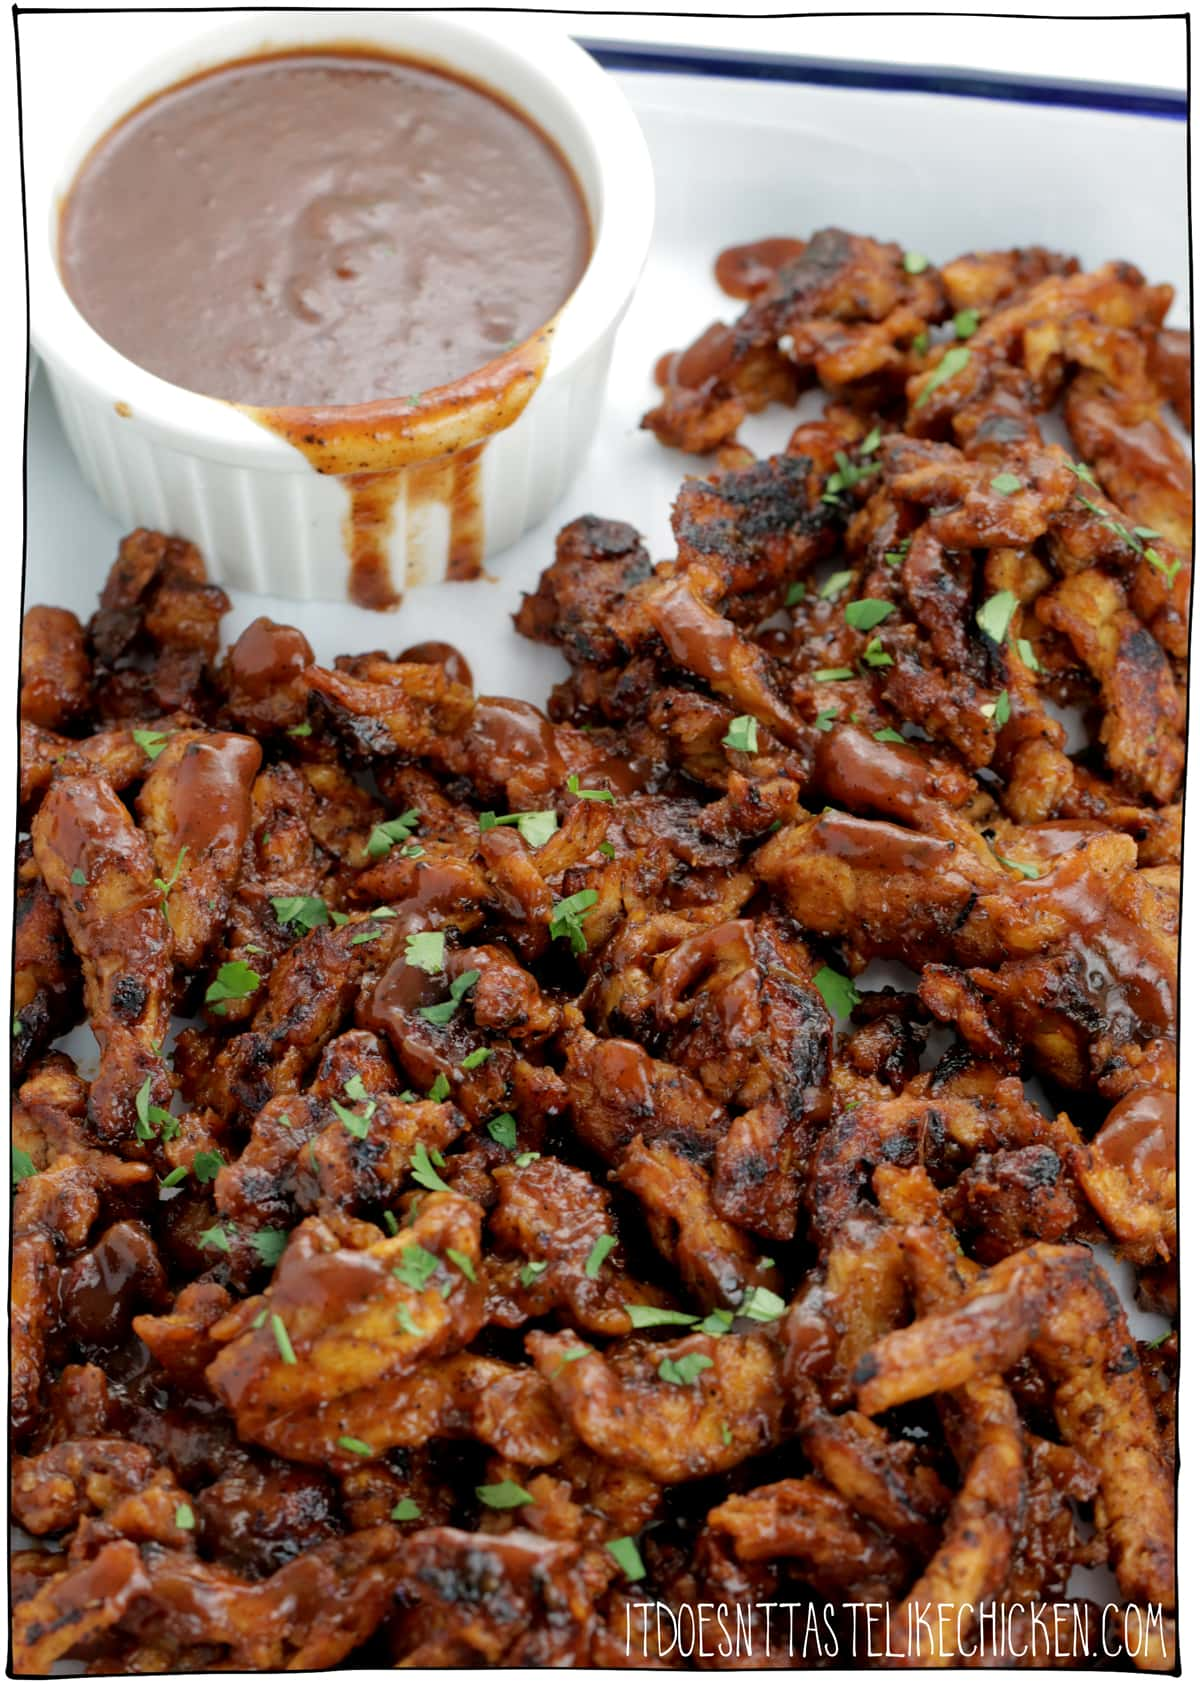 Vegan Jerk BBQ Soy Curls! 20 minutes and just 4 ingredients to make! Spicy, saucy, tender, to die for delicious. Serve them along with some rice and coleslaw, pile them high on a bun, roll them into a wrap, or top a grain bowl. #itdoesnttastelikechicken #veganrecipe #soycurls